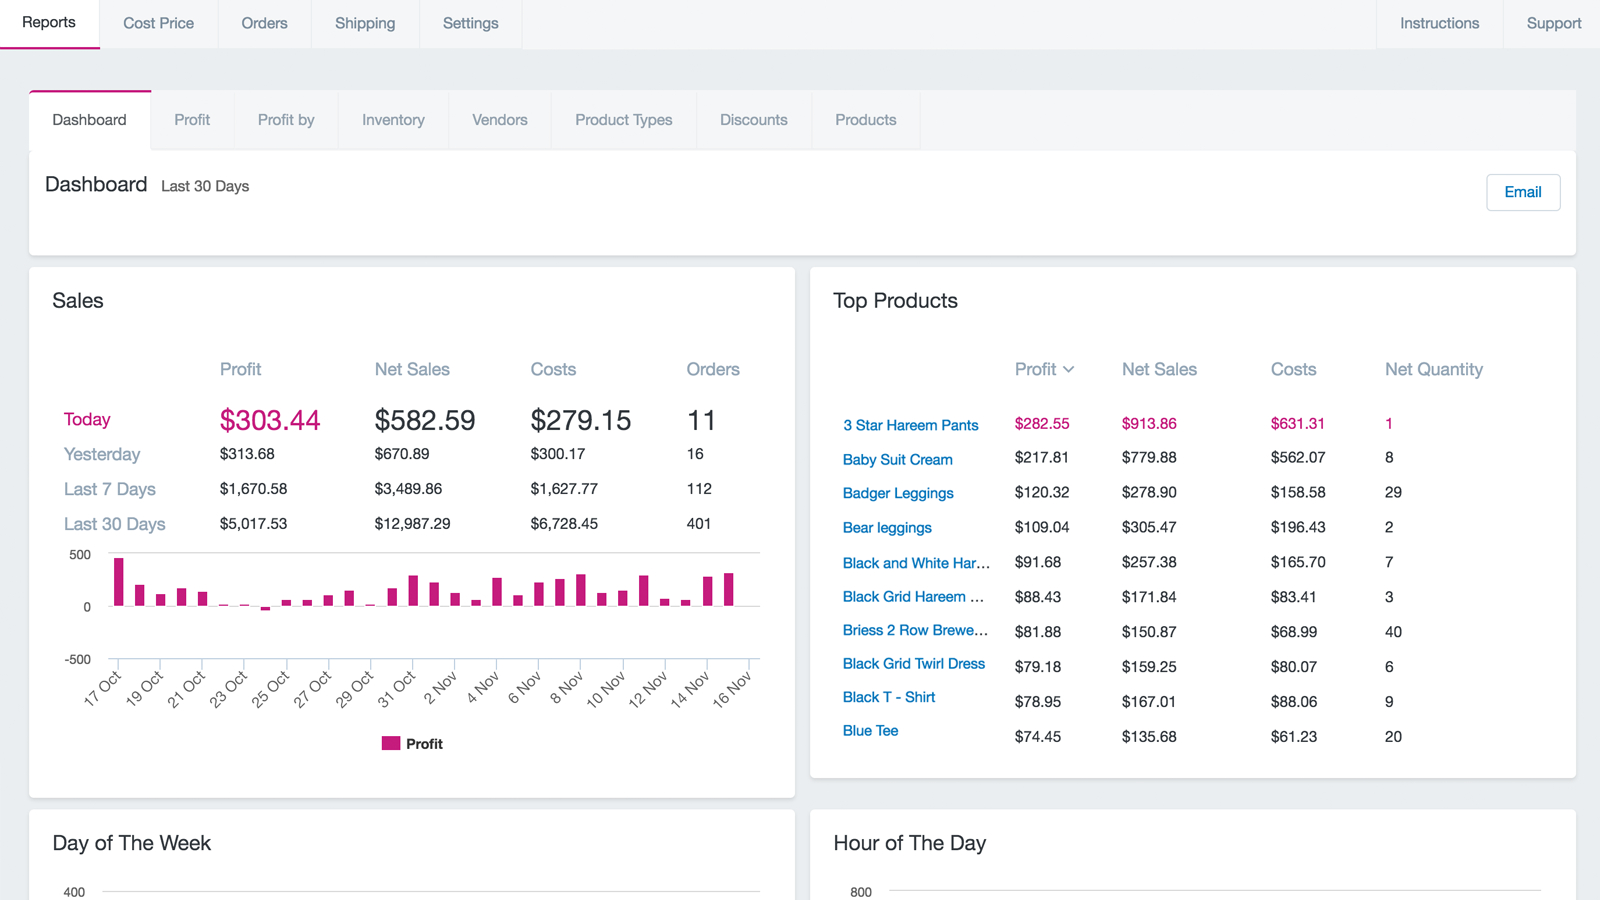 Shopify Spreadsheet With Delirious Profit – Ecommerce Plugins For Online Stores – Shopify App